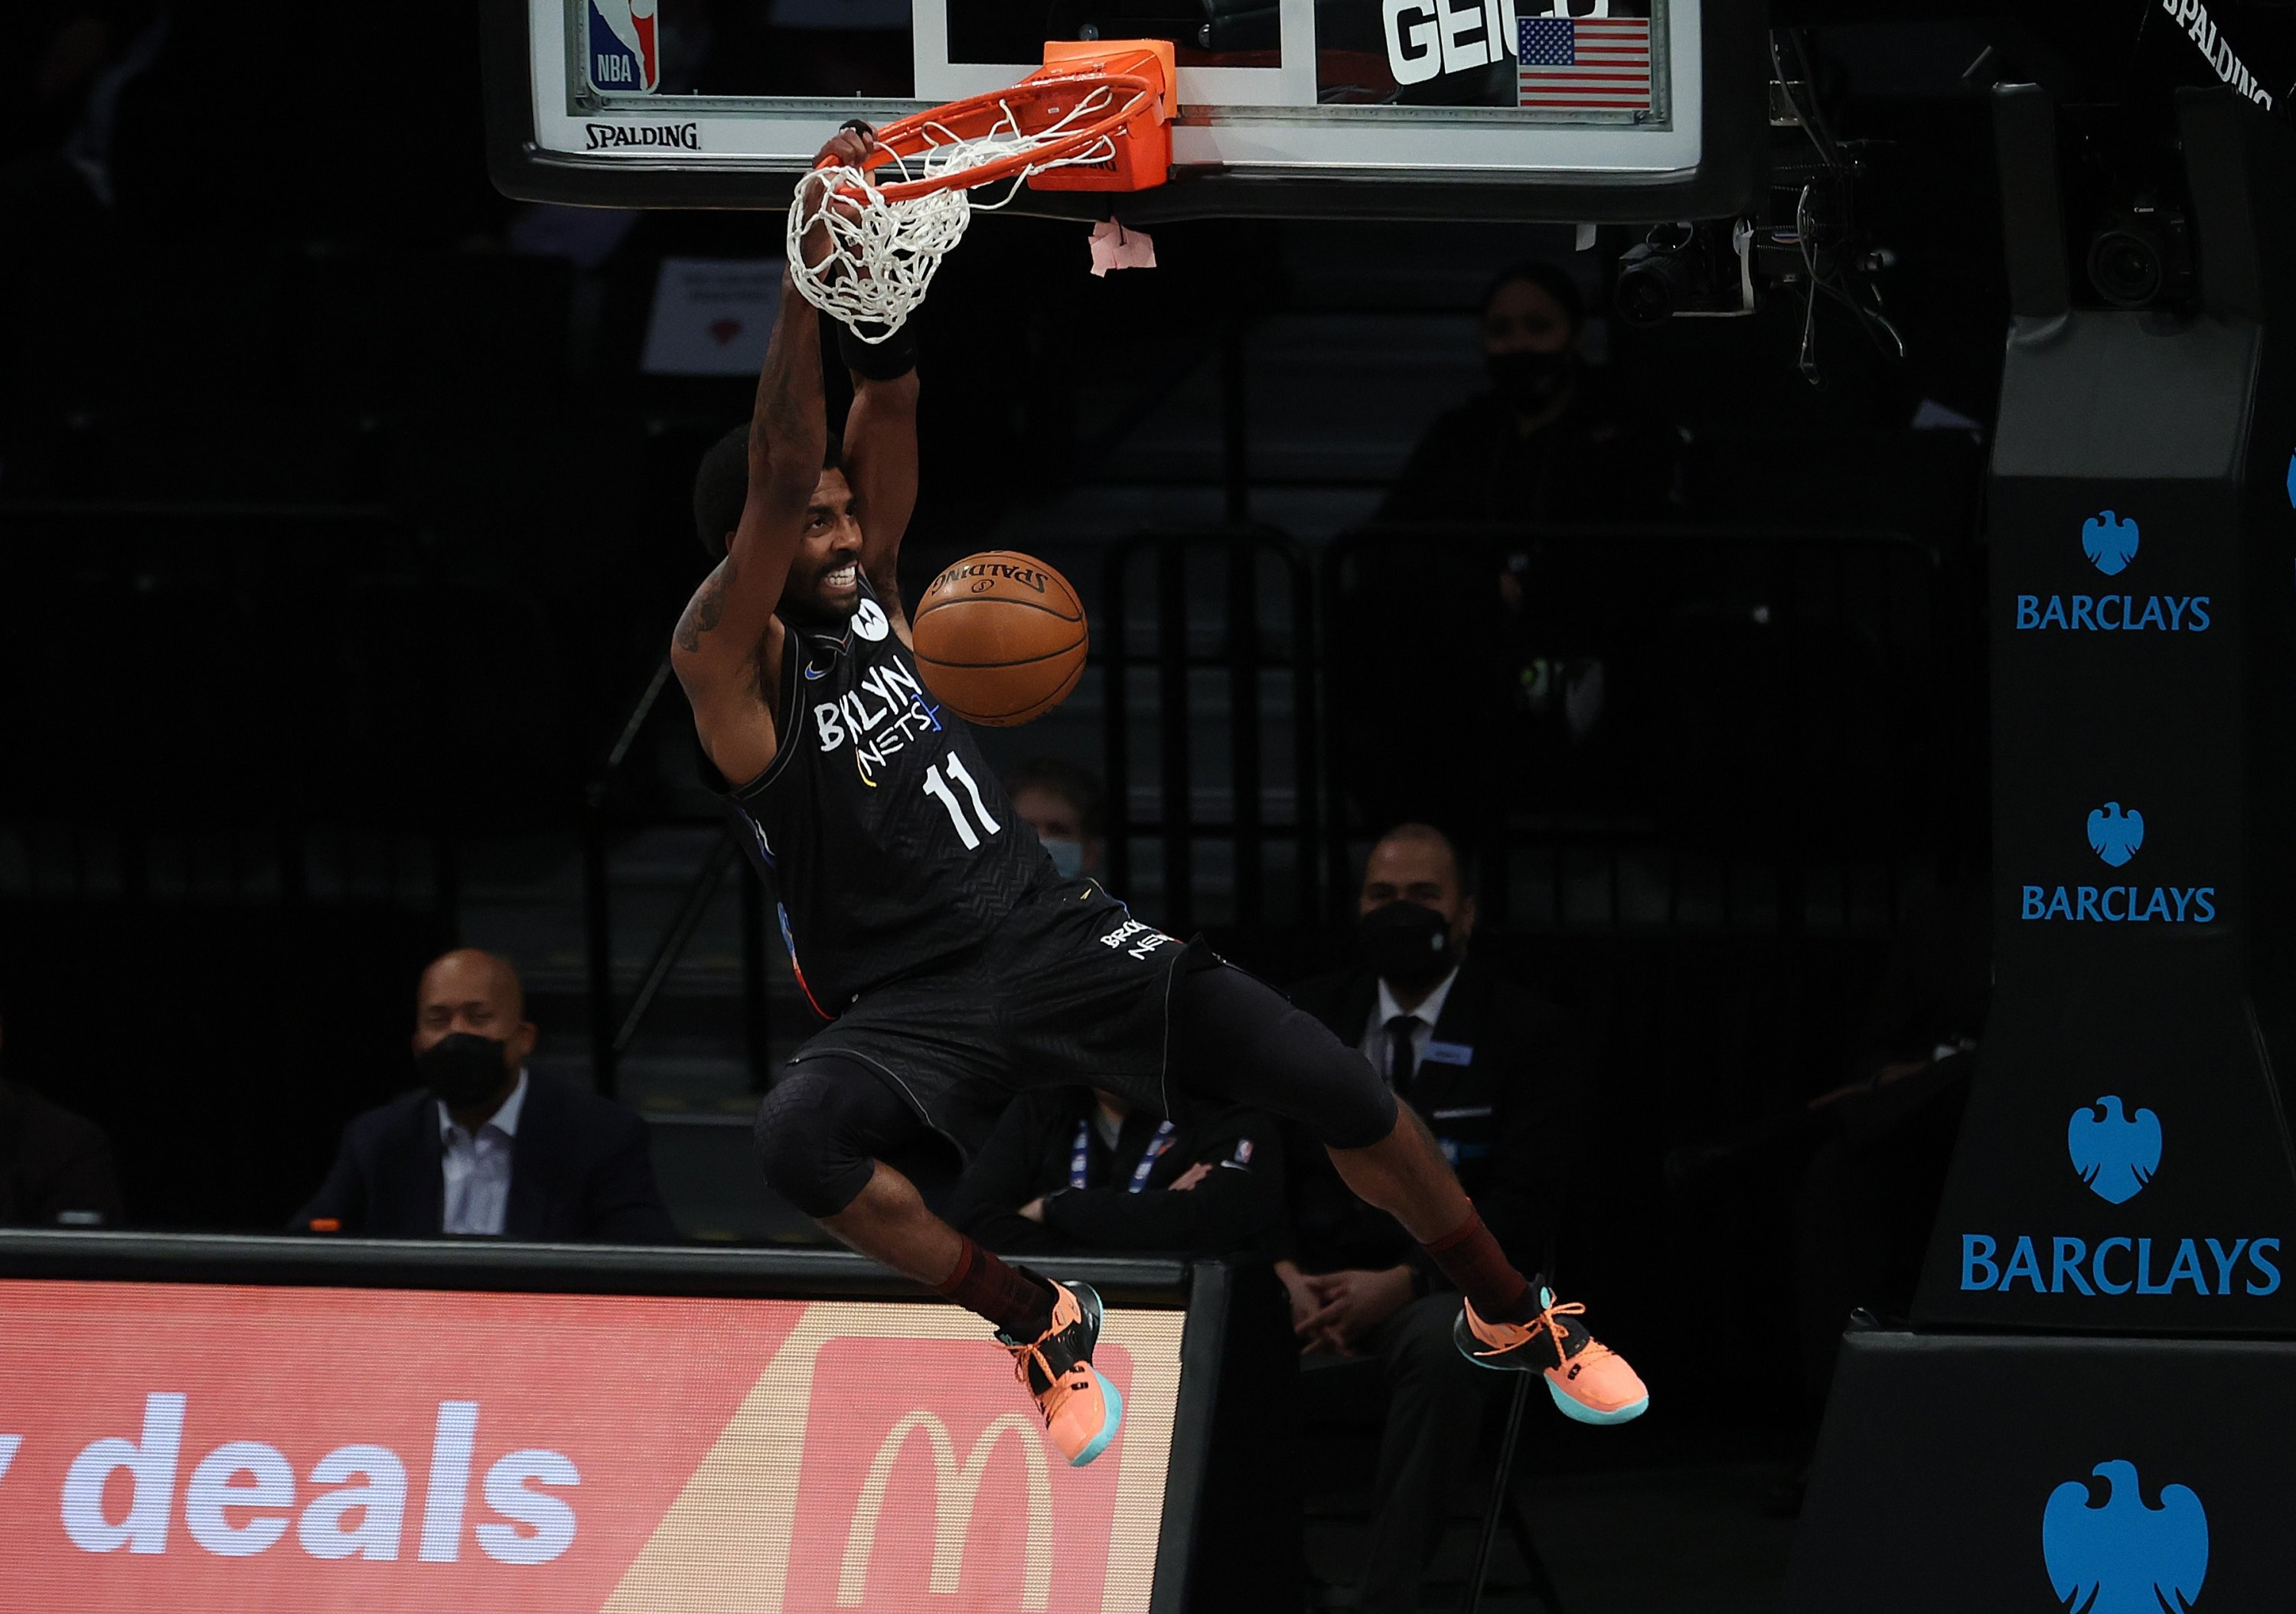 Brooklyn Nets' Kyrie Irving dunks against the New York Knicks during an NBA game at Barclays Center, New York City, U.S., April 05, 2021. (Getty Images/AFP Photo)